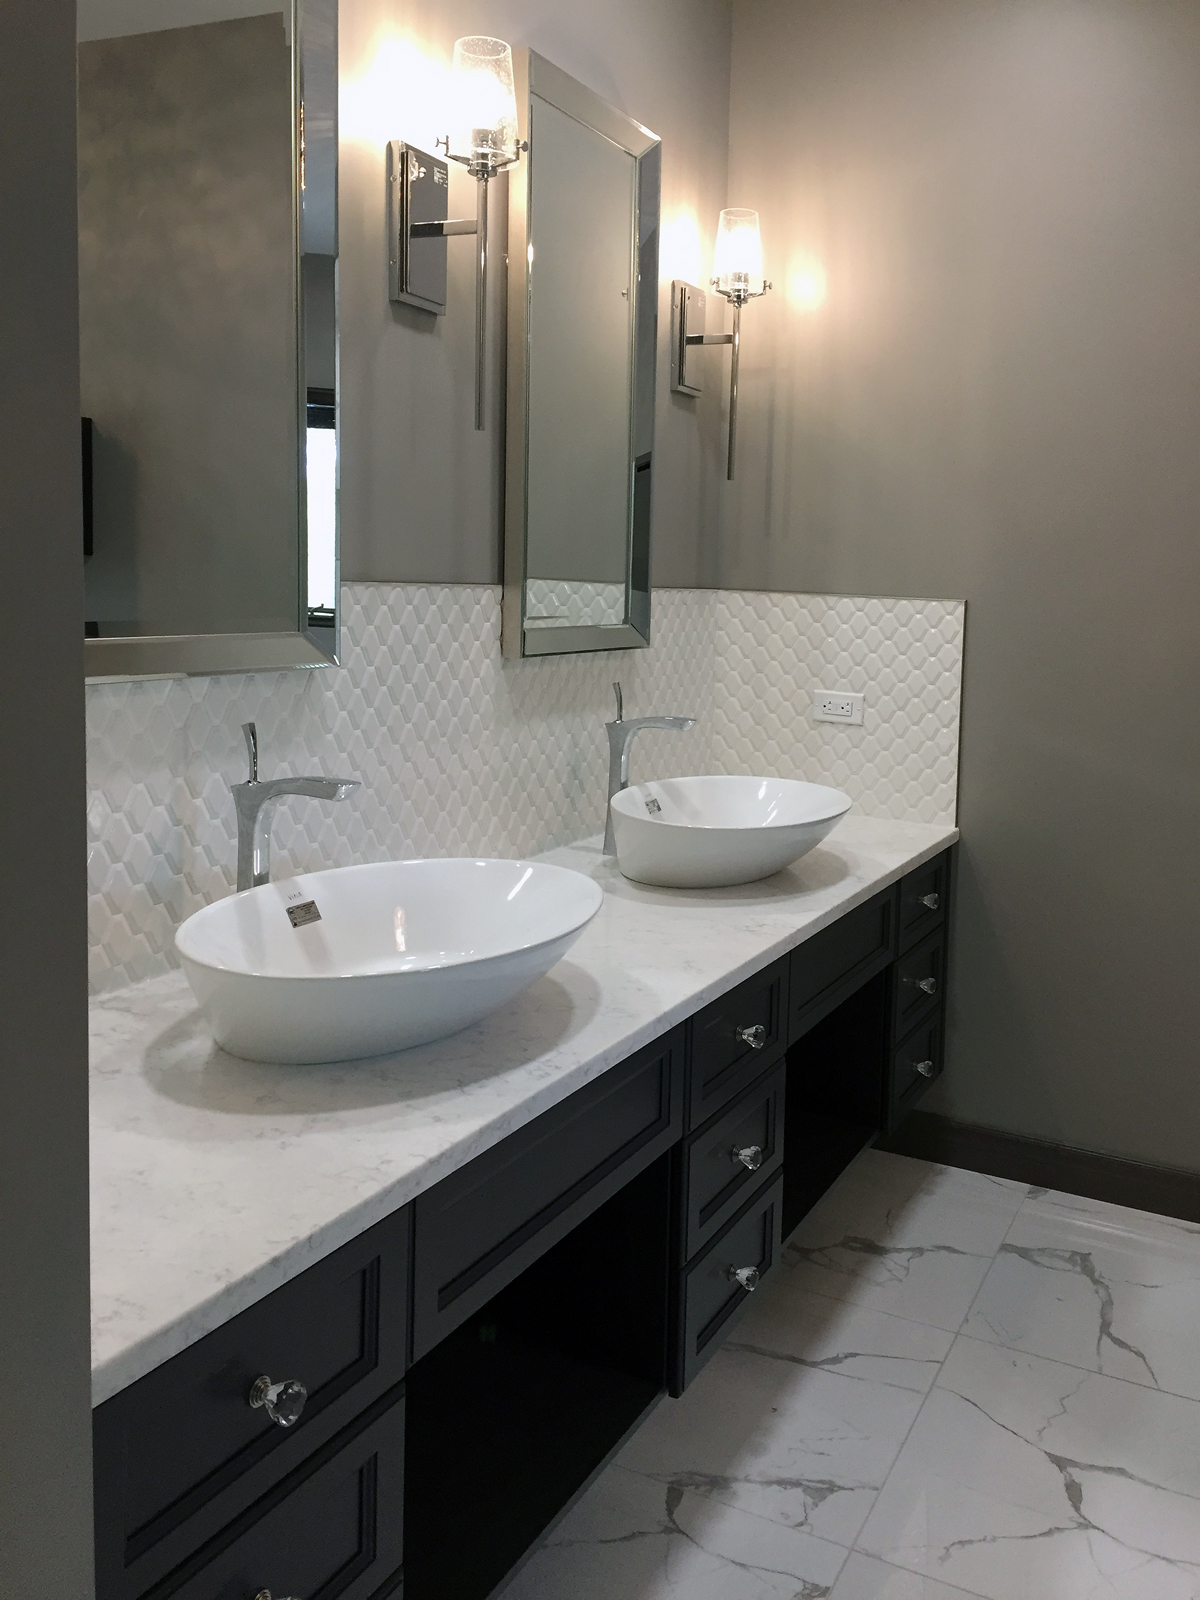 Ensuite and Walk-in Closet Renovation